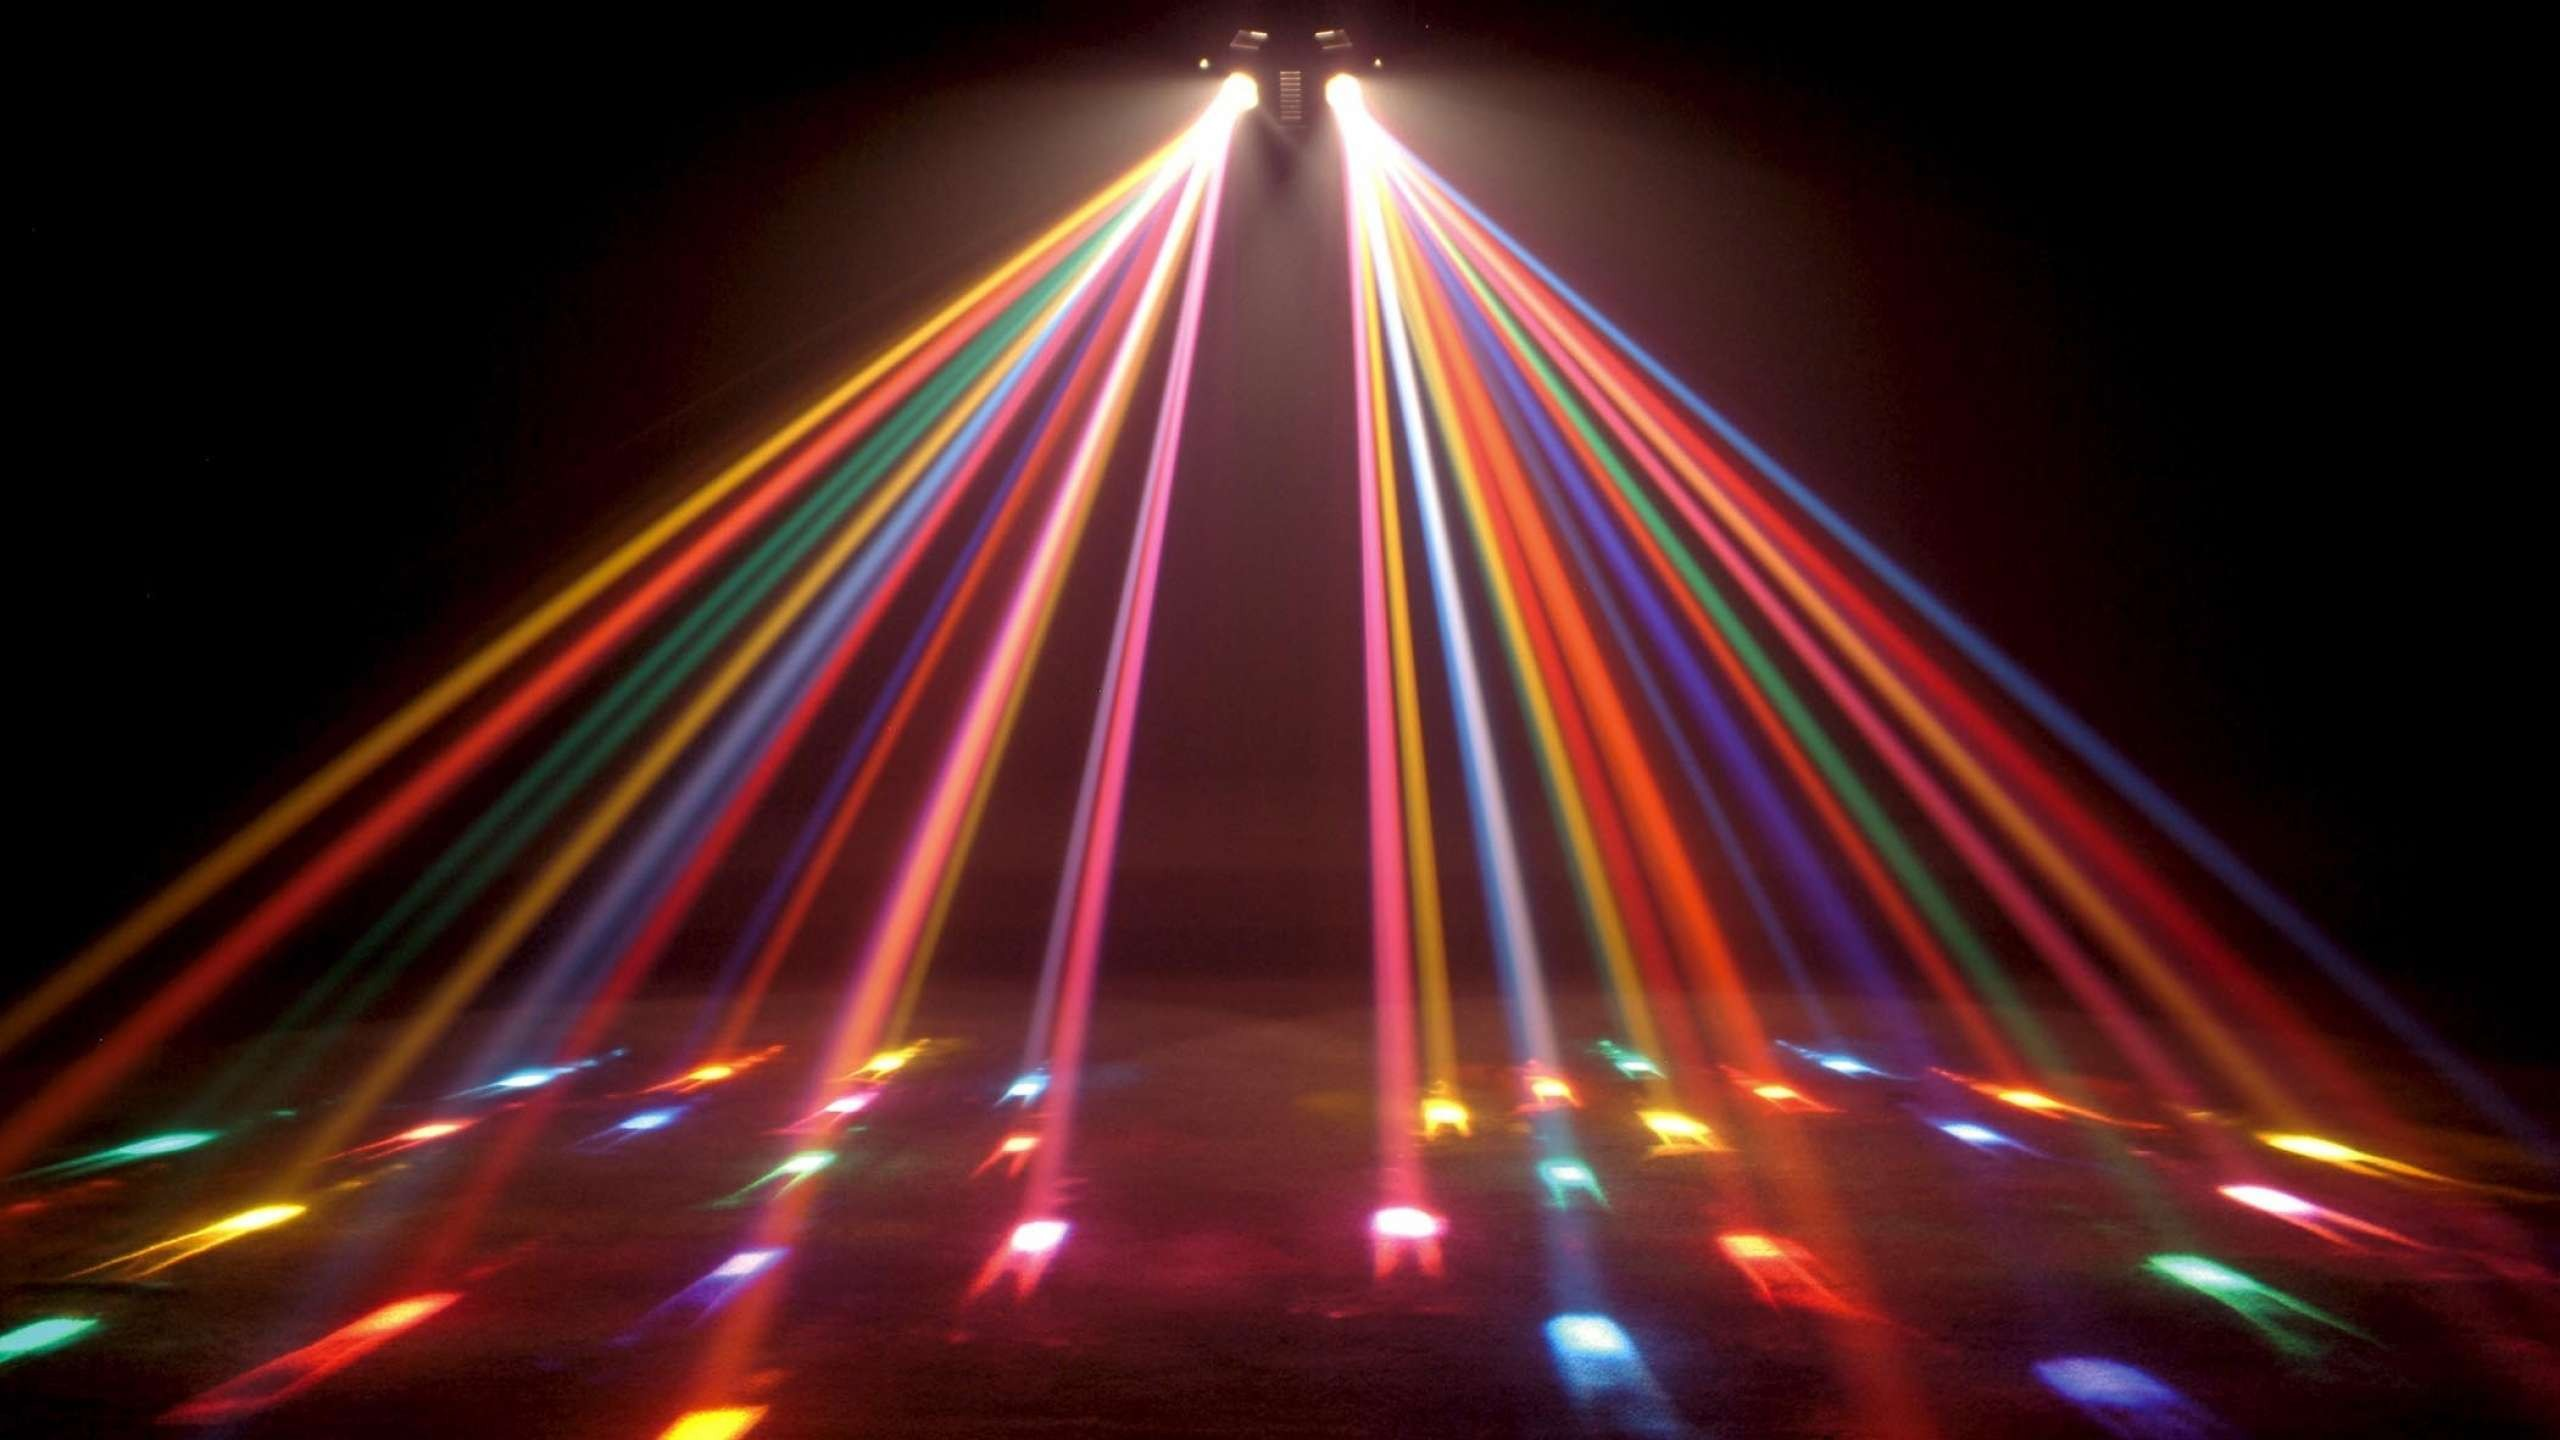 Download wallpapers DJing, disco, lights, party, DJ for ...